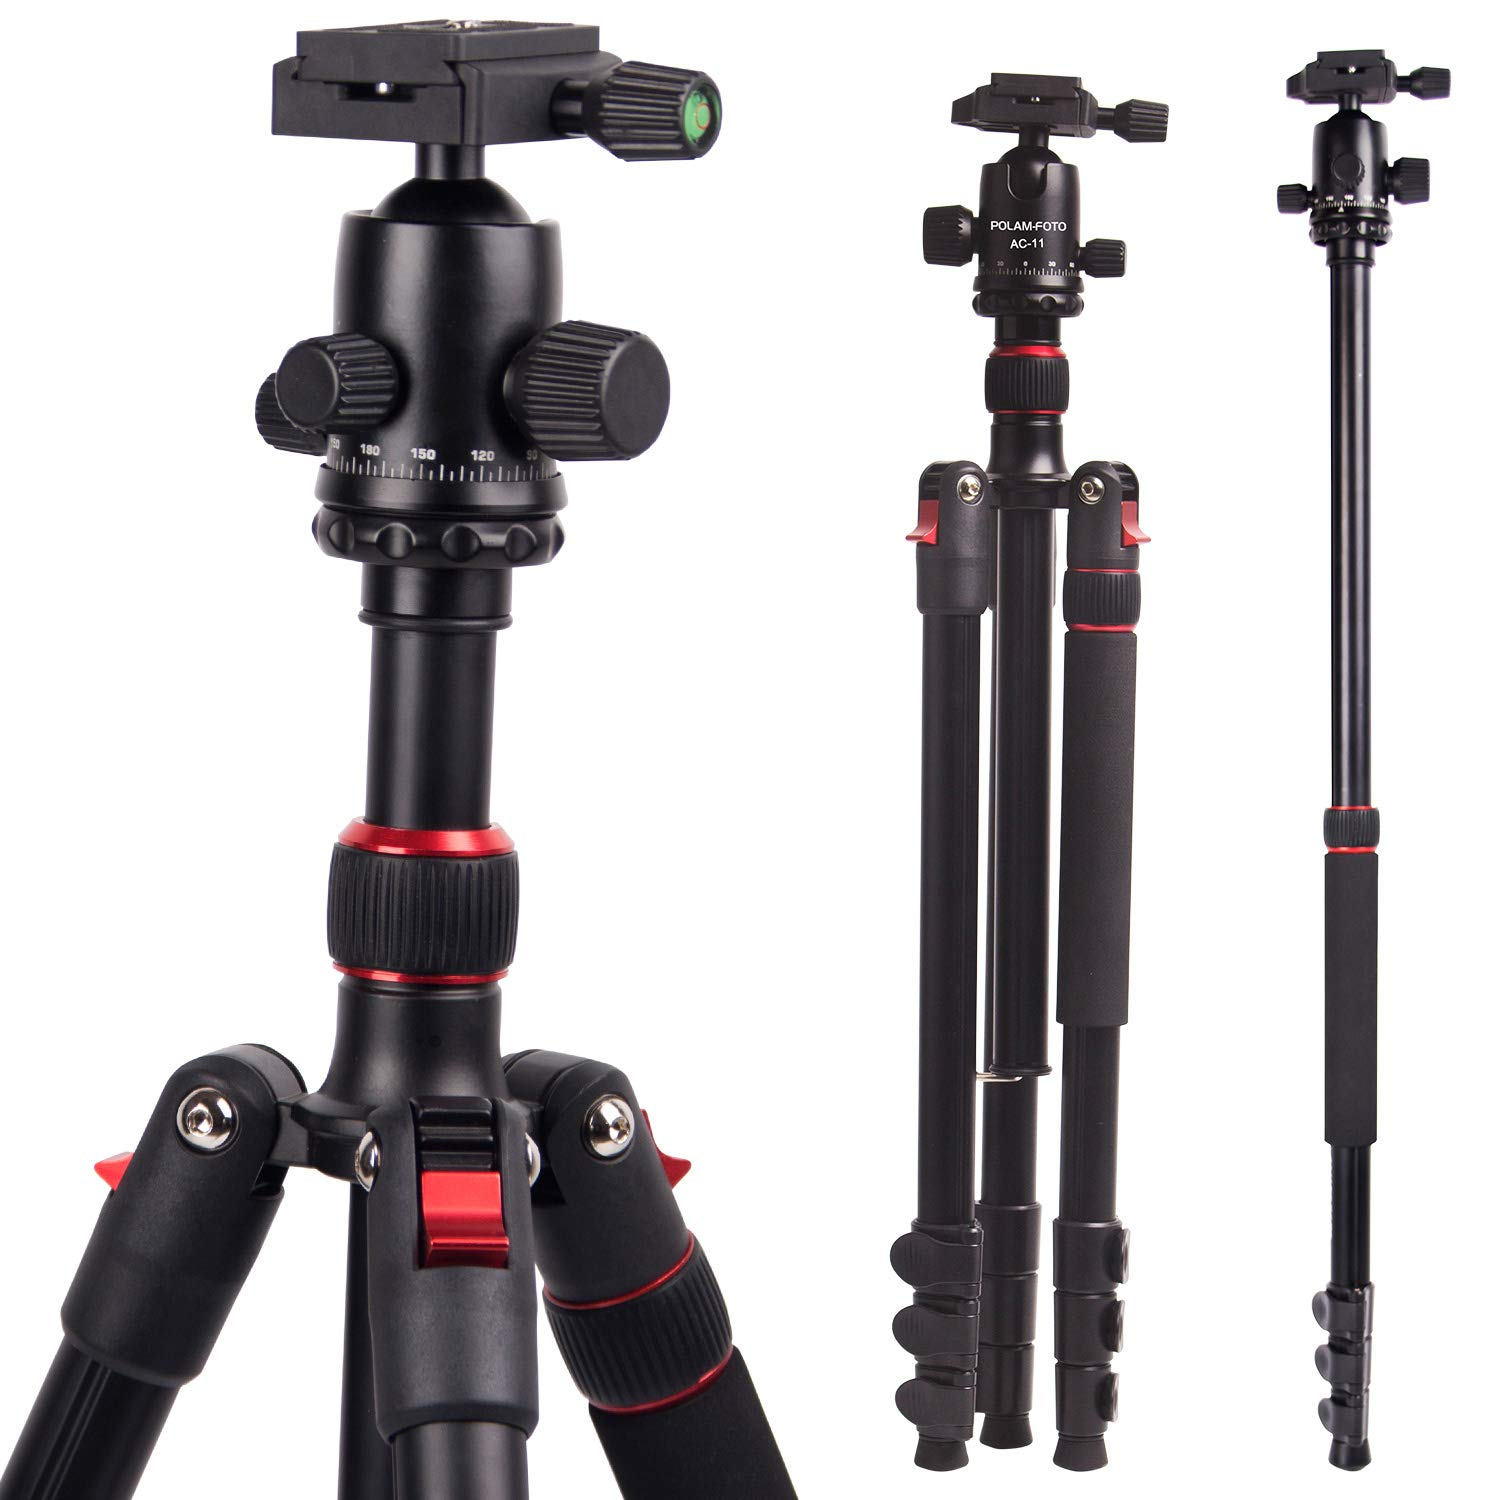 POLAM-FOTO Professional Compact Tripod 66.14''/168cm Aluminum Travel Tripod with Ball Head Monopod 68.11''/173cm with Carry Bag by POLAM-FOTO